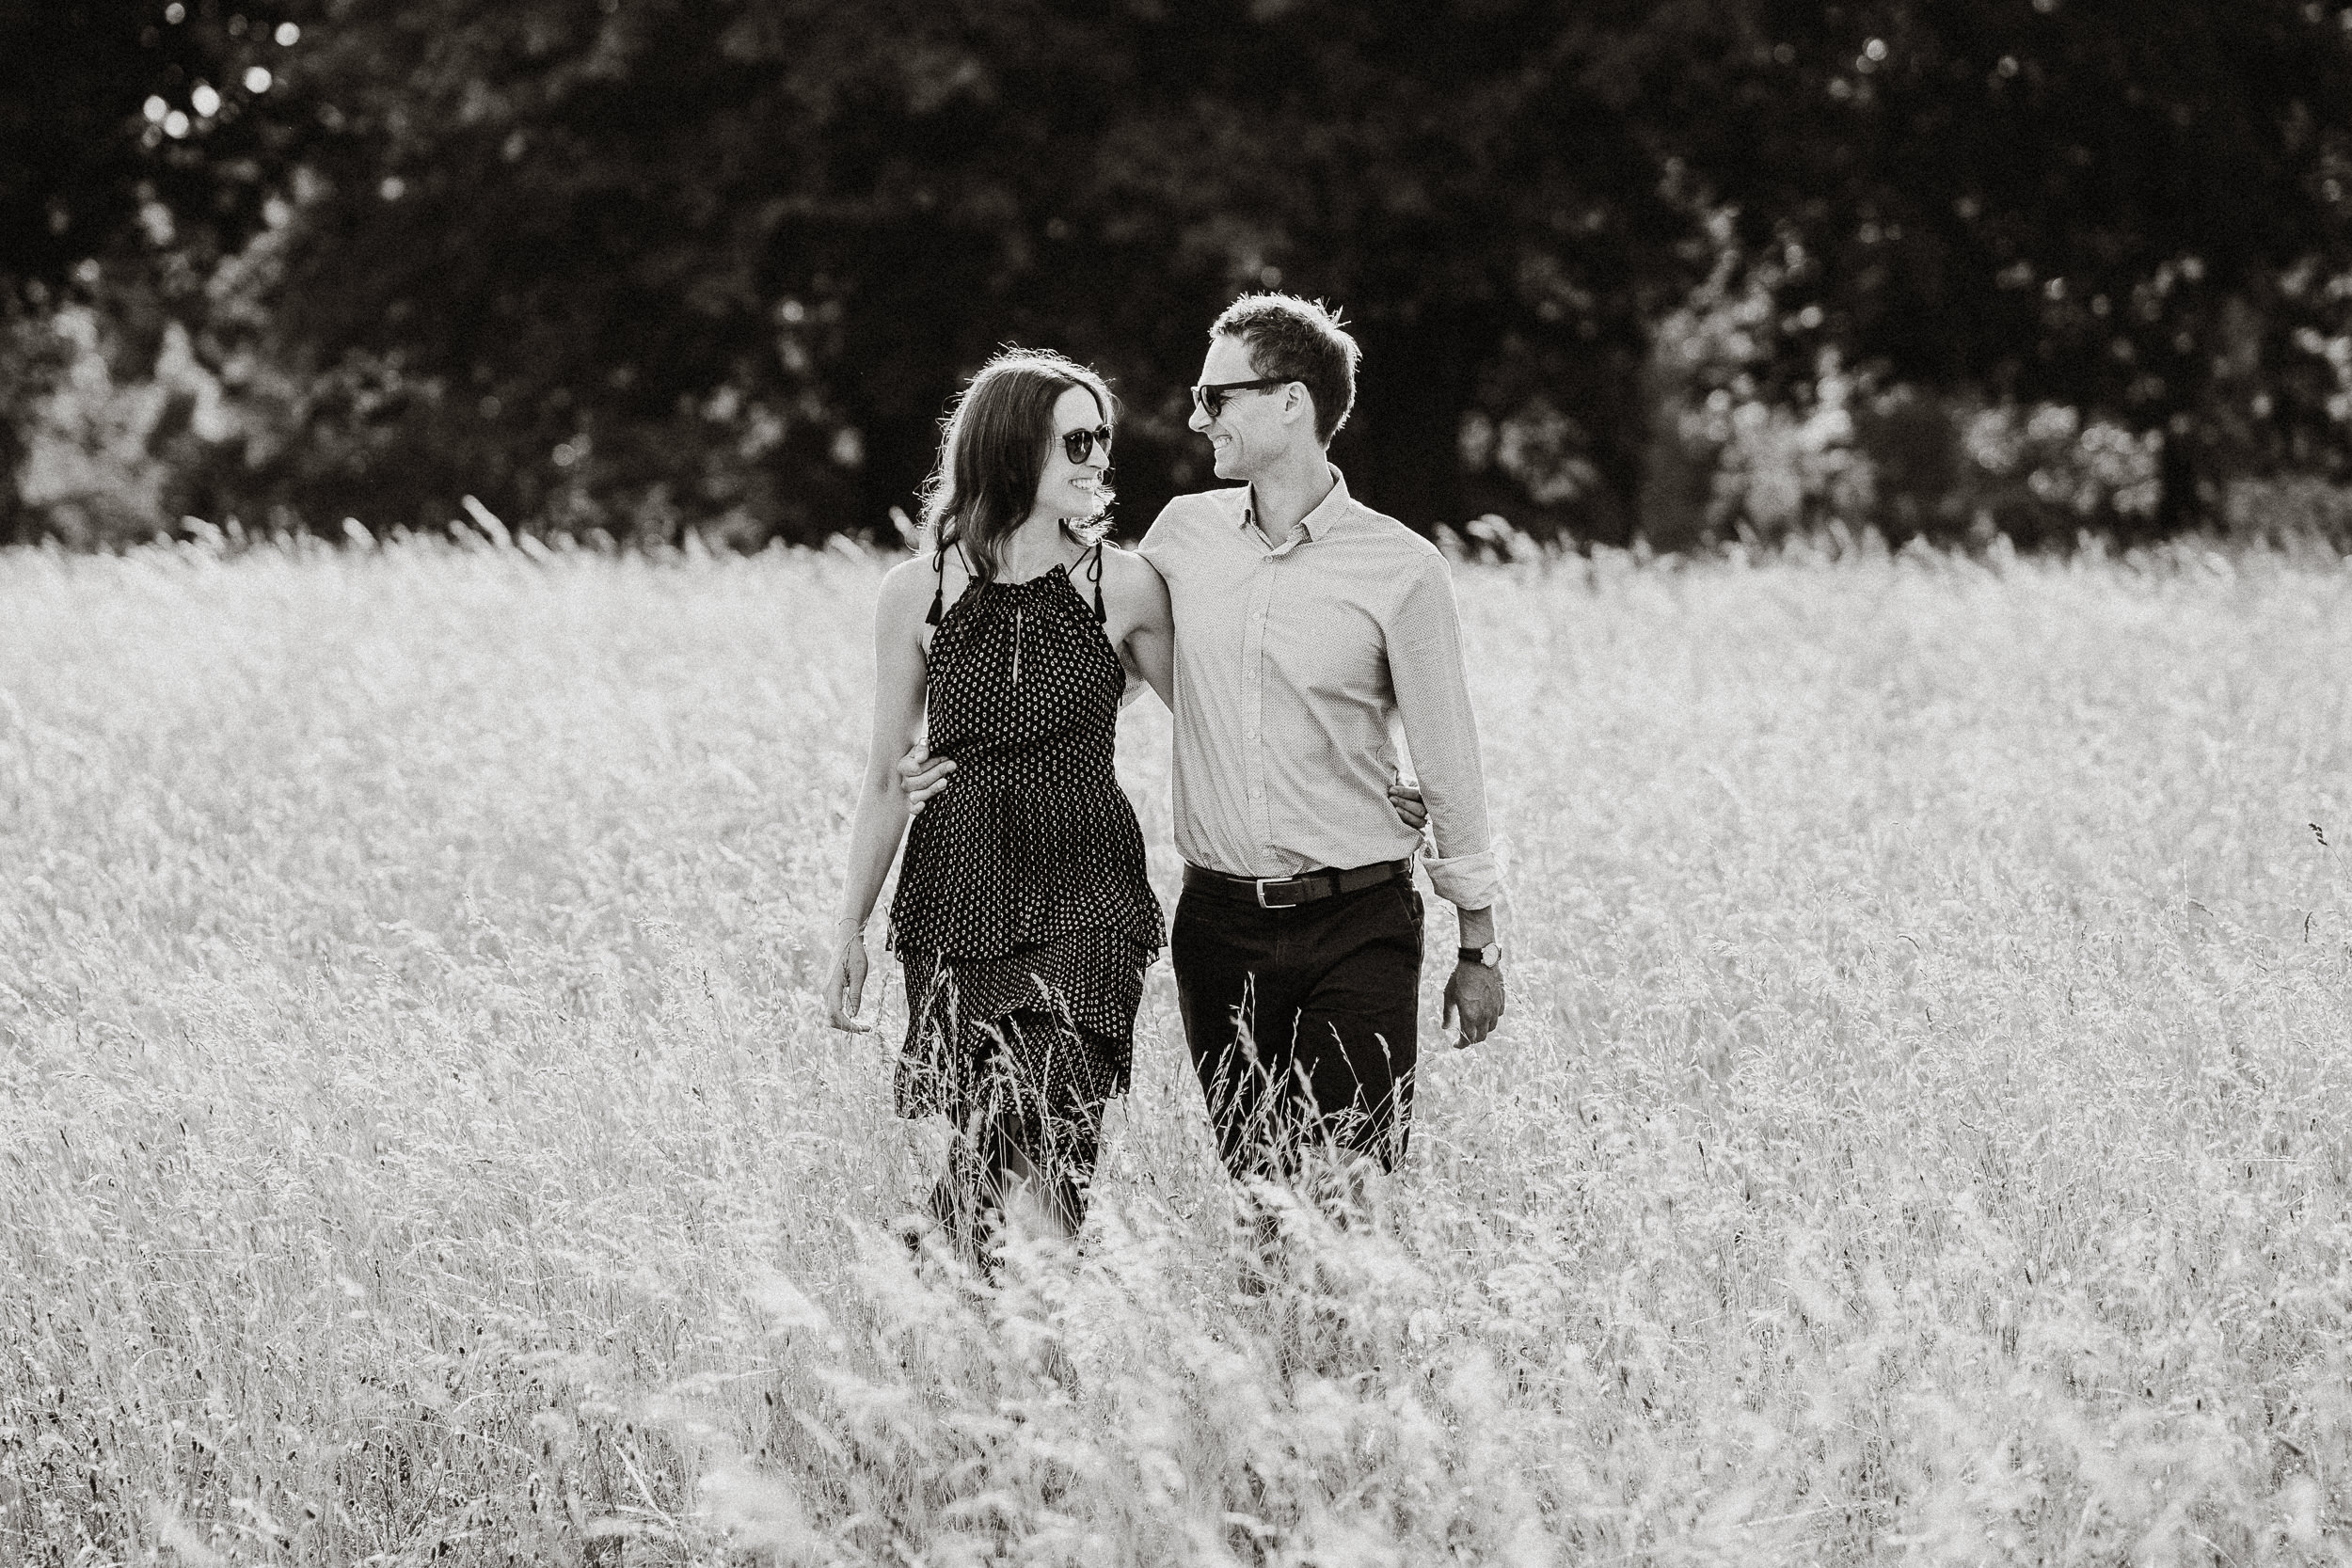 Engagement Shoot on Clifton Downs - The couple on Durdham Downs in Bristol